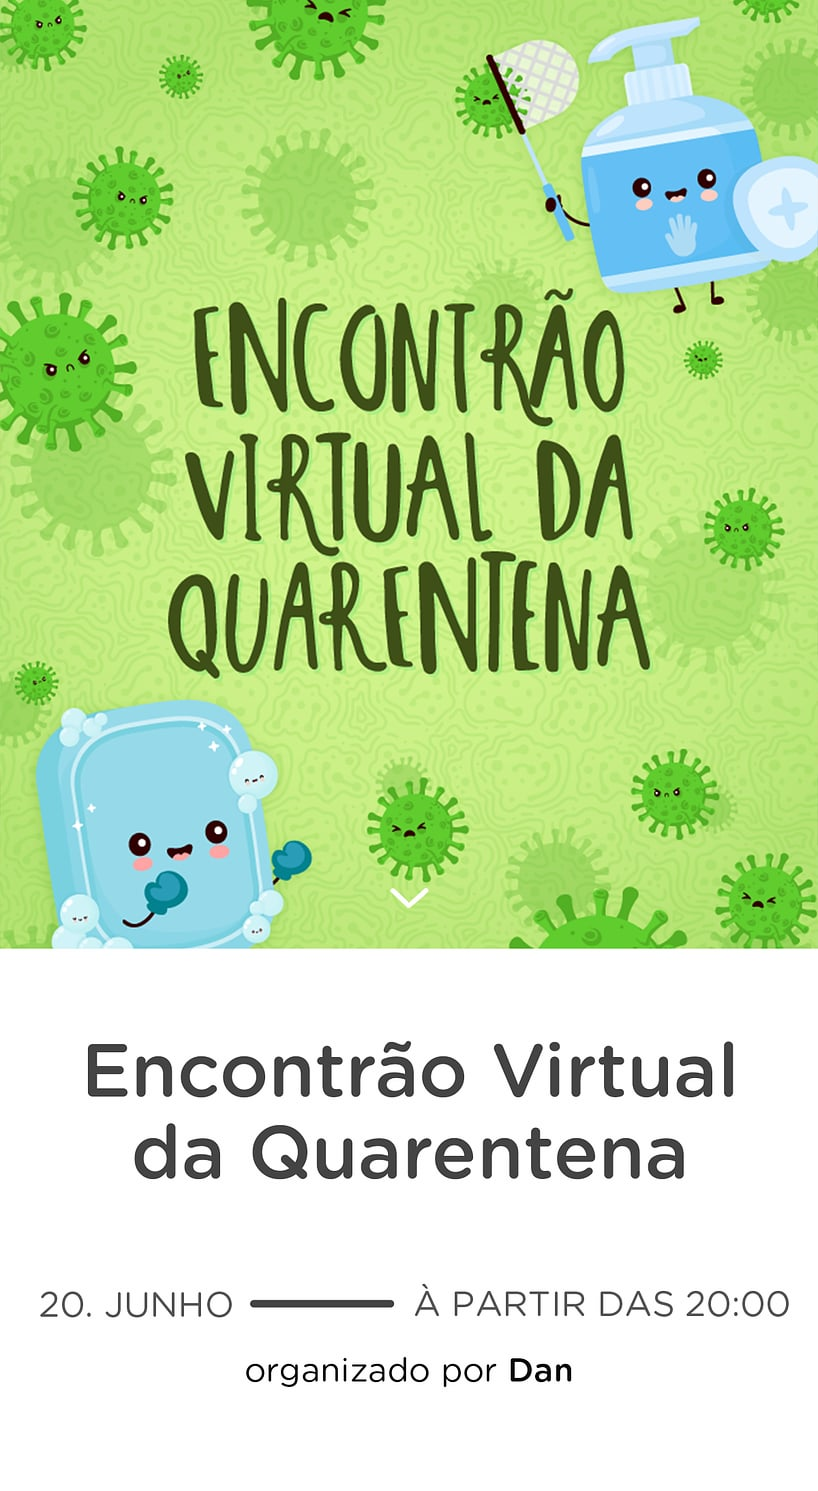 Vibe de Encontro Virtual - Encontro Quarentena